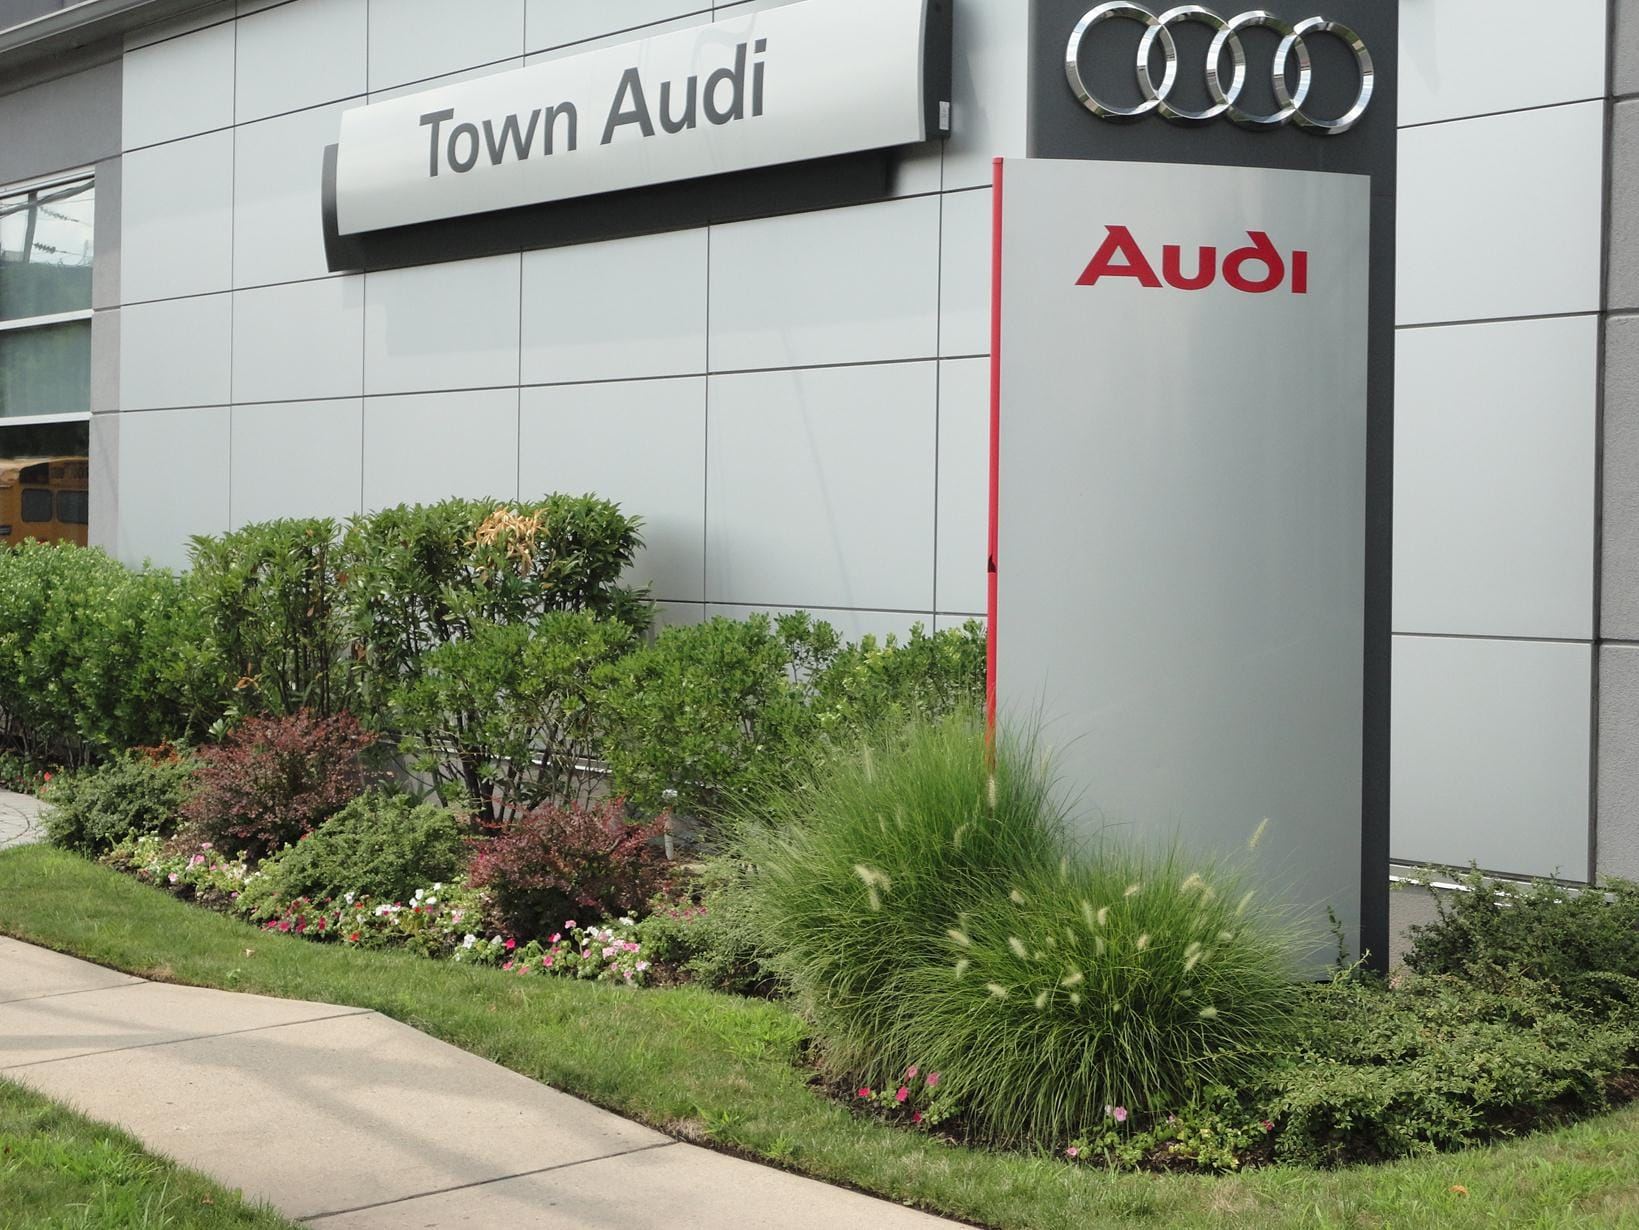 about town audi englewood nj new audi and used car dealer. Black Bedroom Furniture Sets. Home Design Ideas